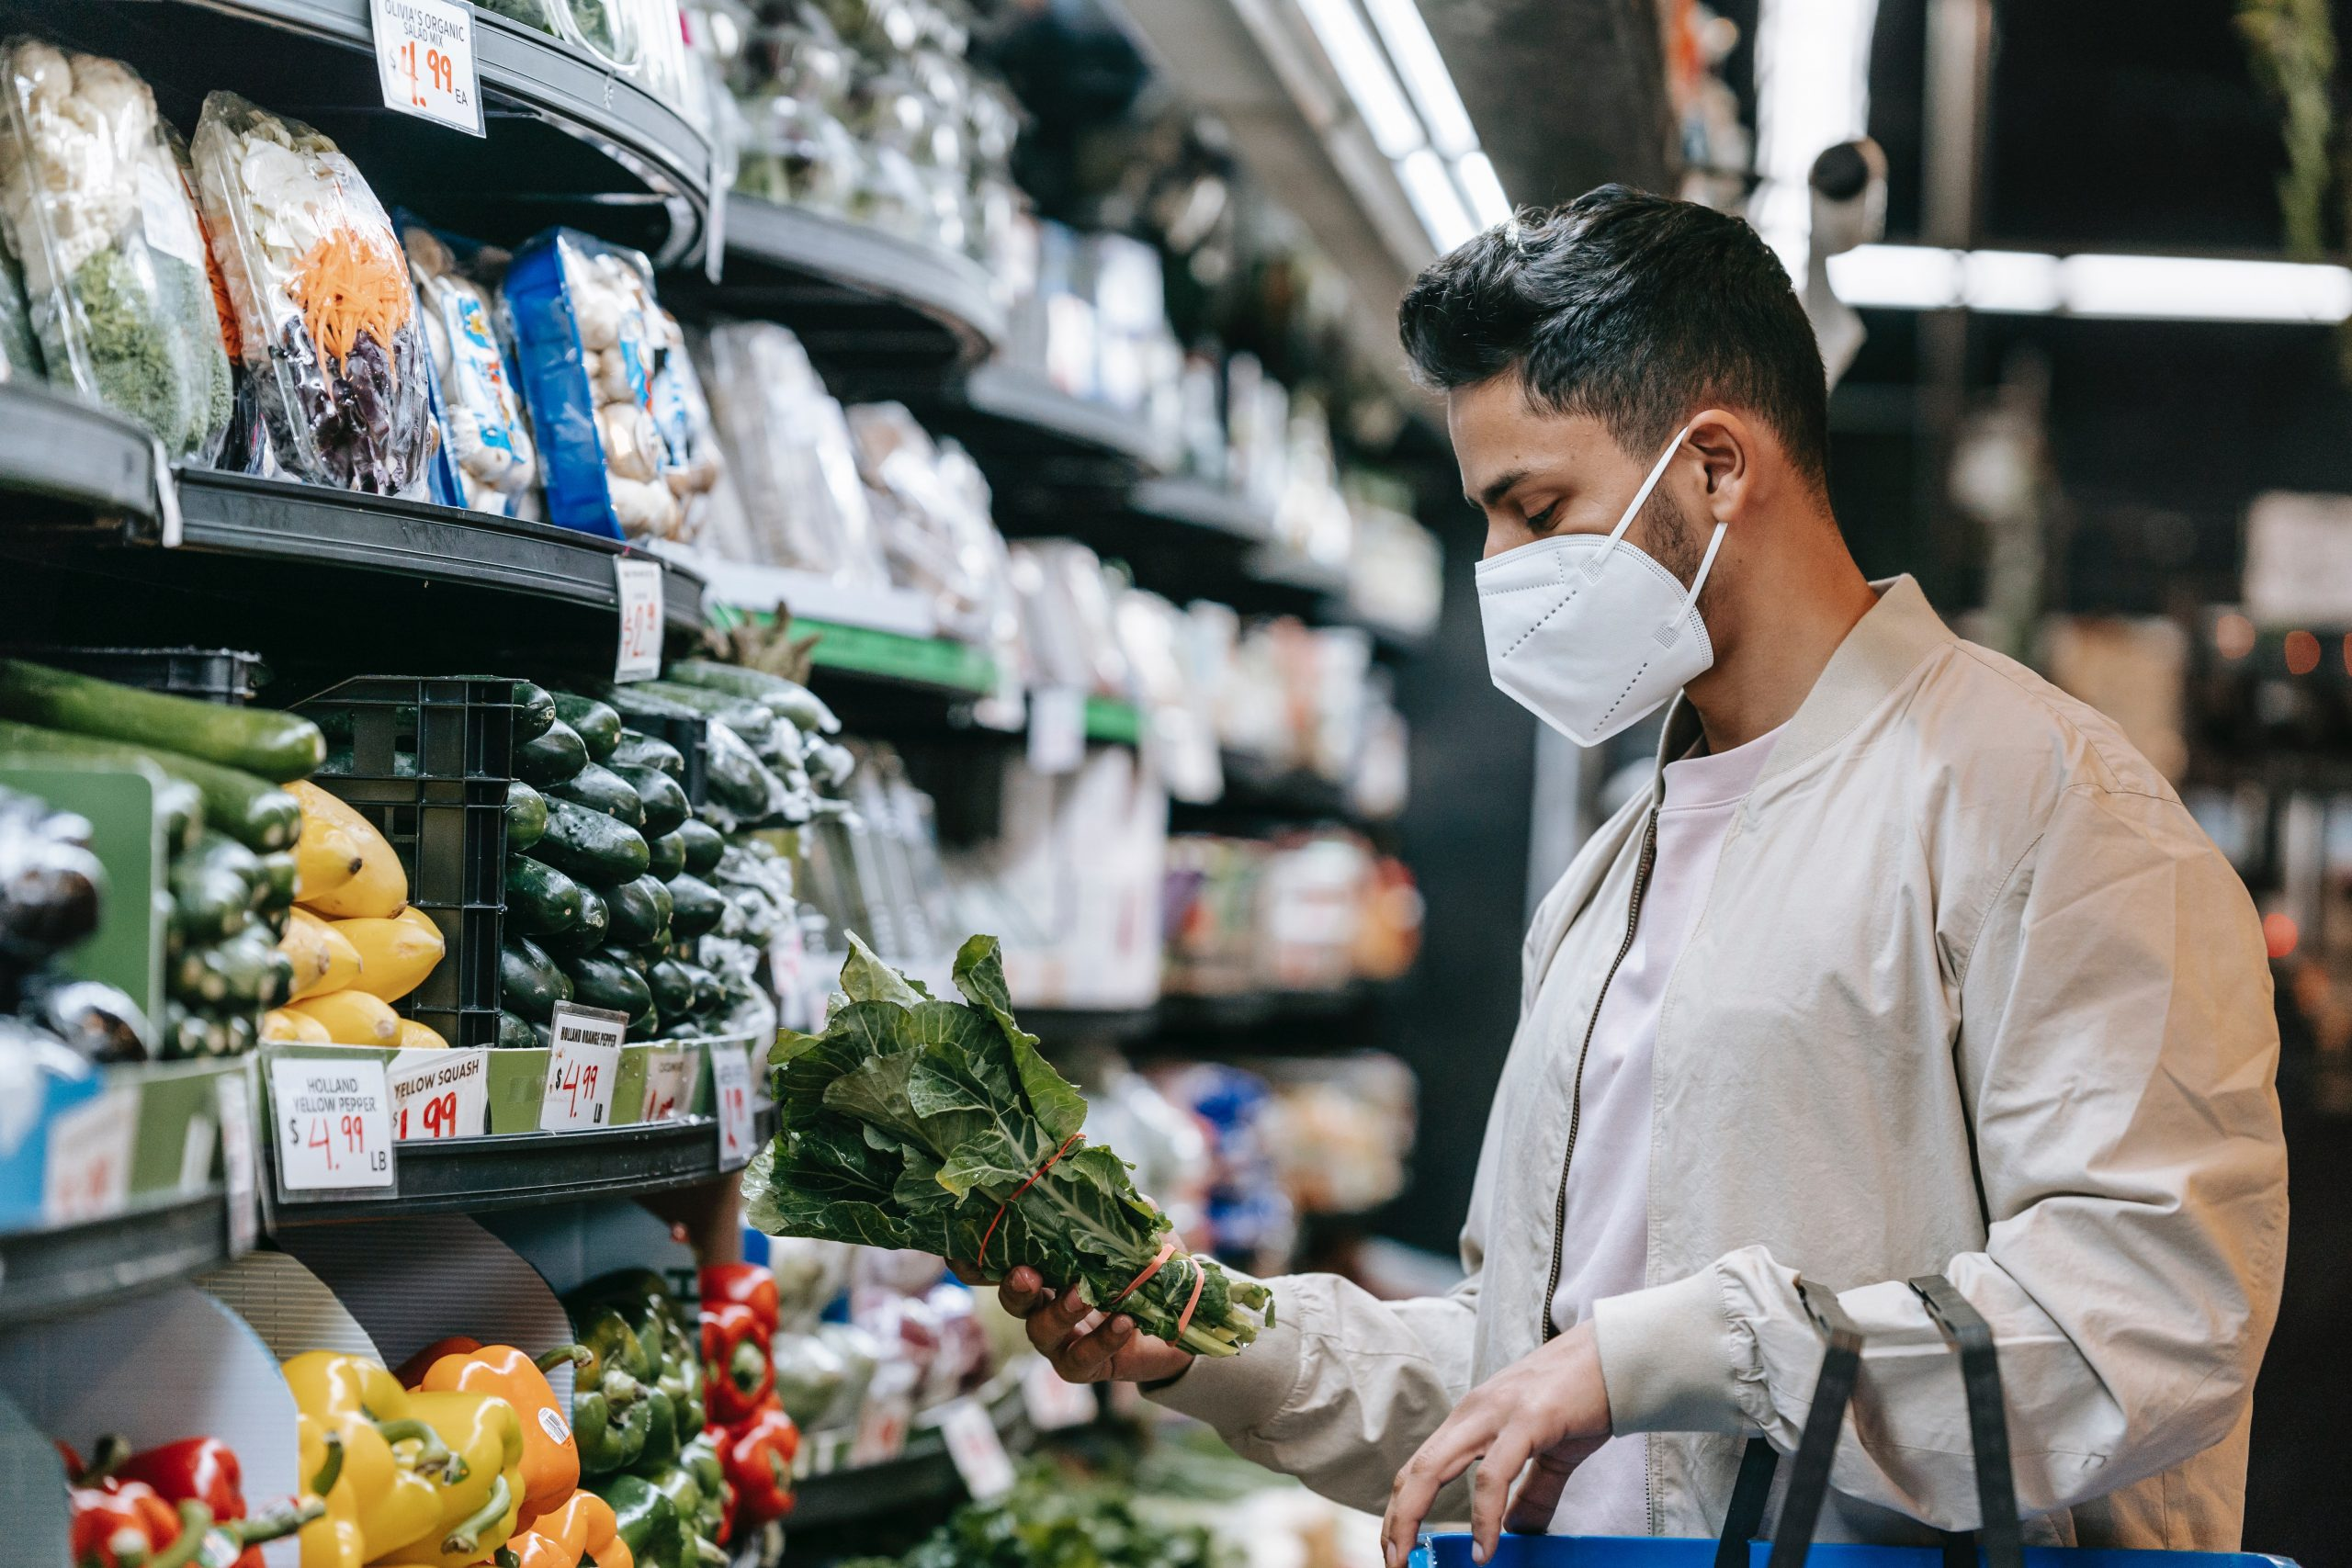 A man buying healthy food for diet to combat adhd.